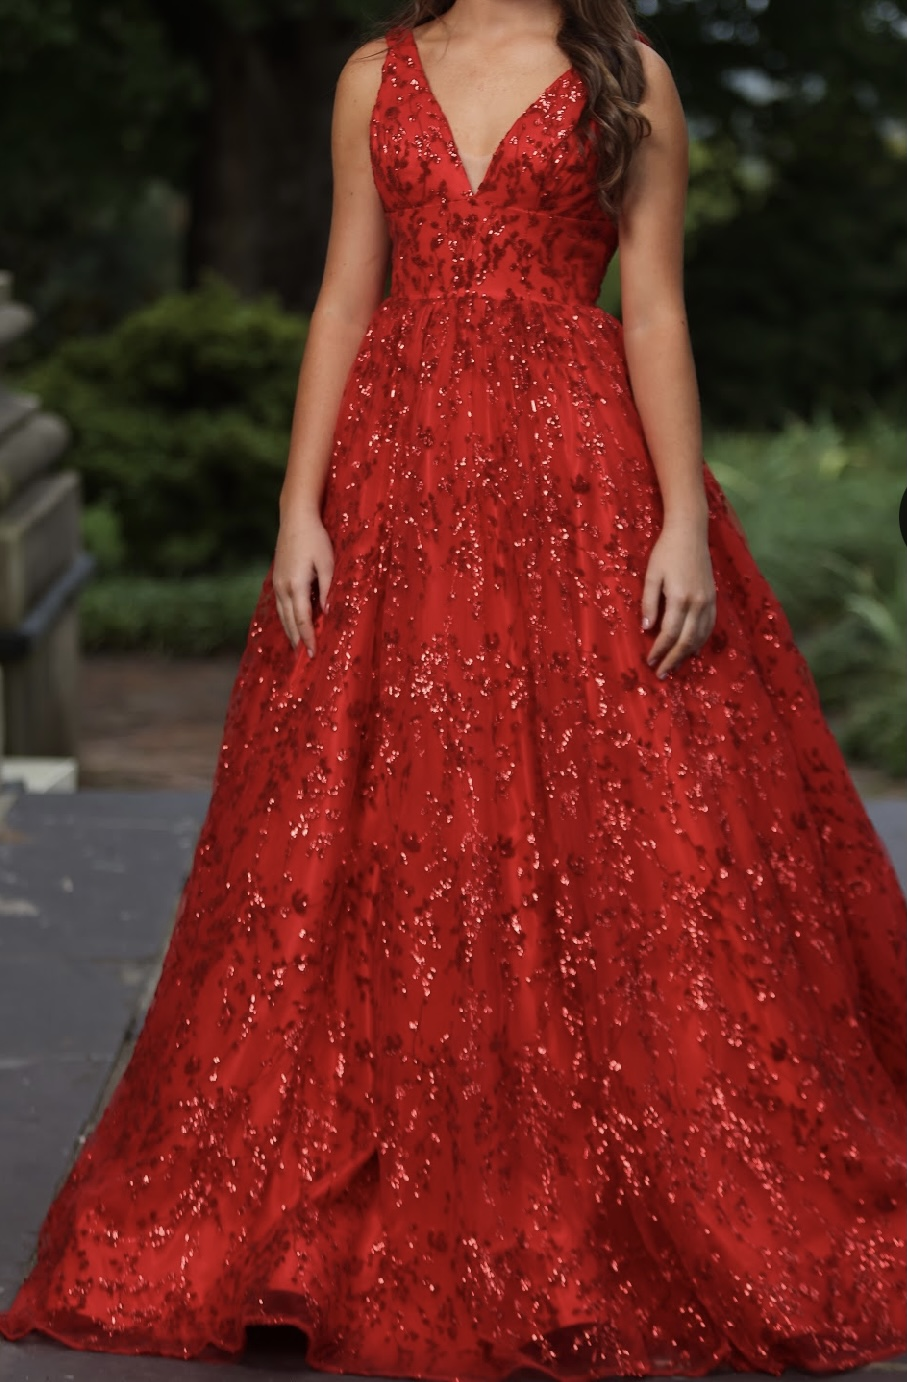 Size 0 Sherri Hill Prom Dress for sale in  Mississippi